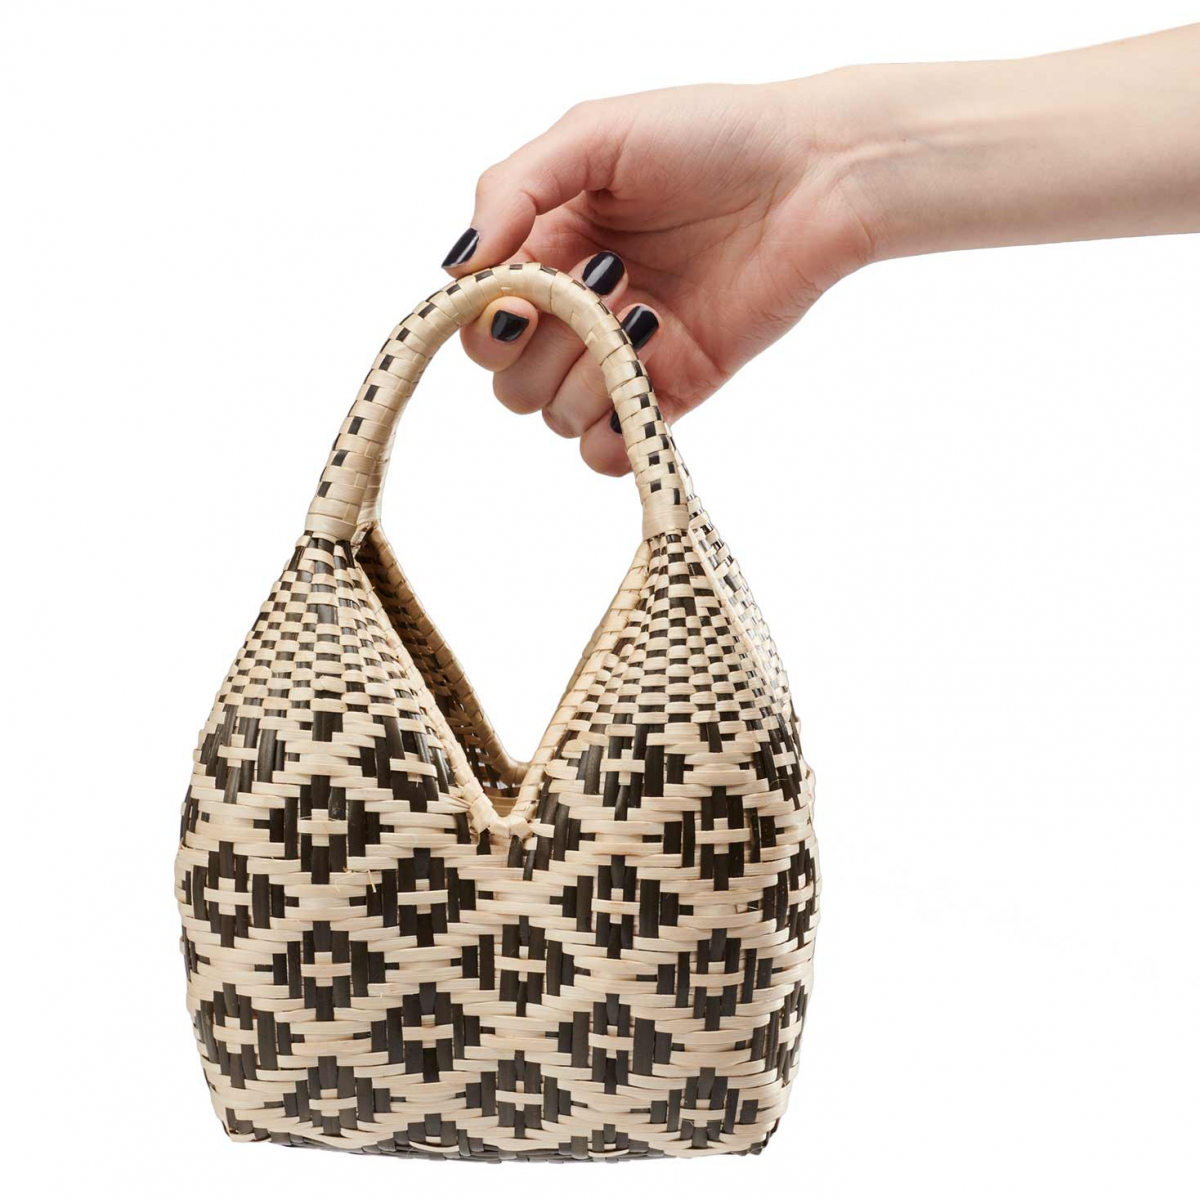 Handbag Product on White